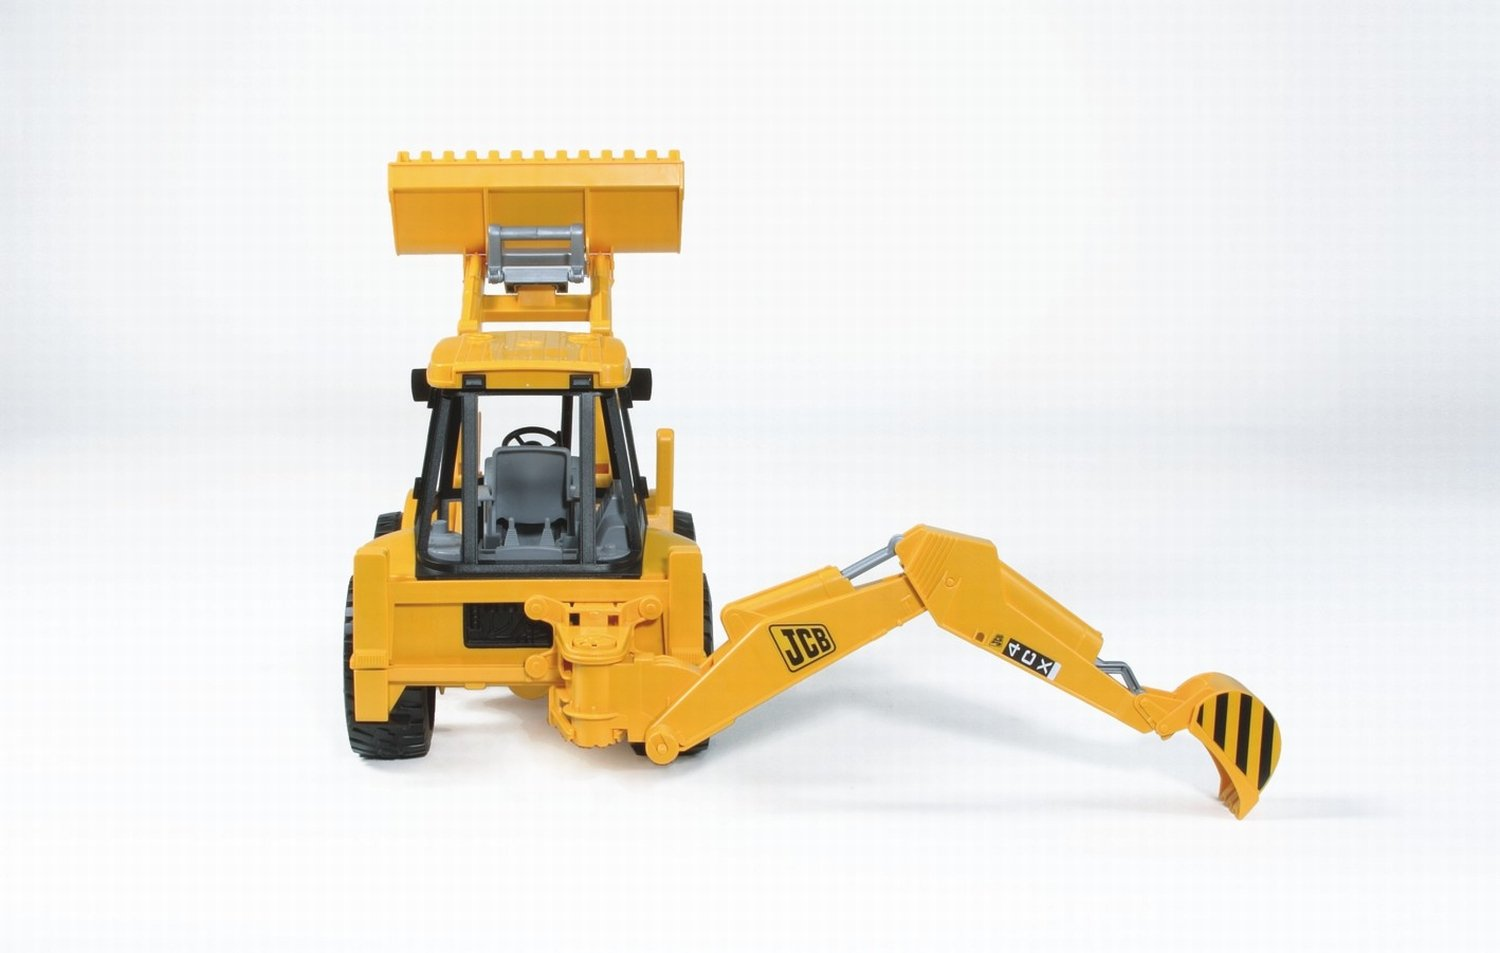 Bruder Construction Toys For Boys : Bruder toys loader backhoe new free shipping